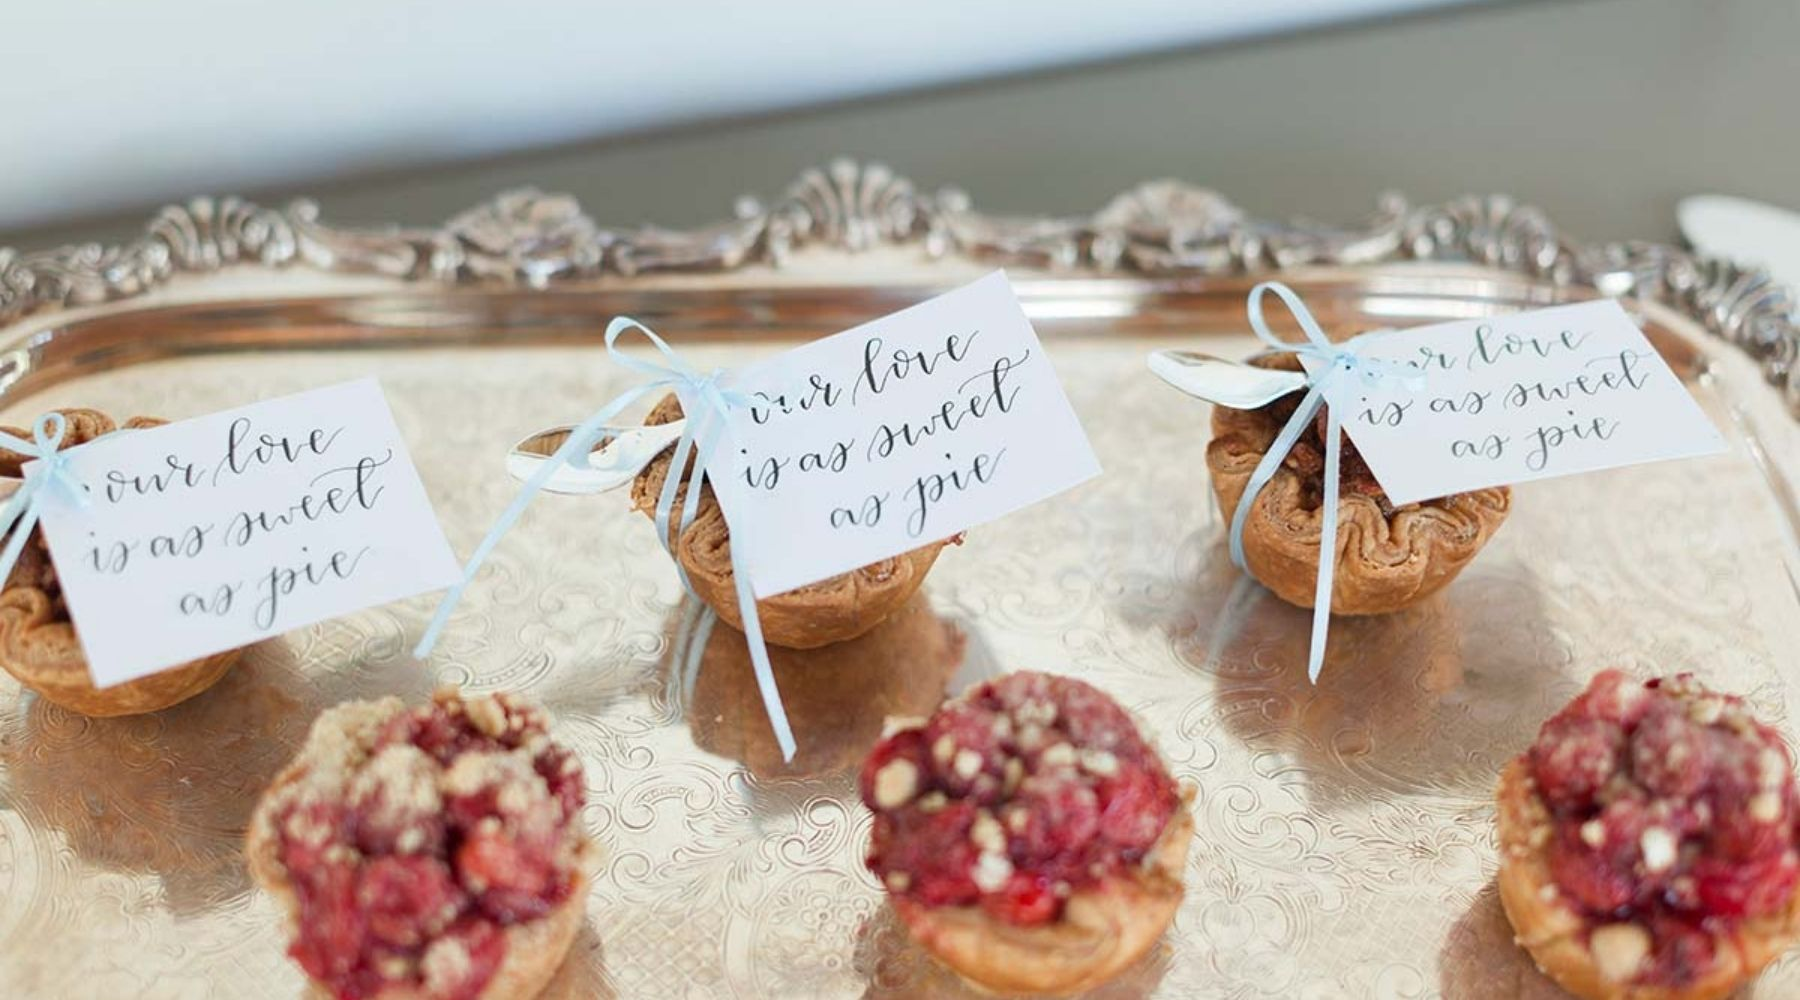 sweets on a wedding celebration table